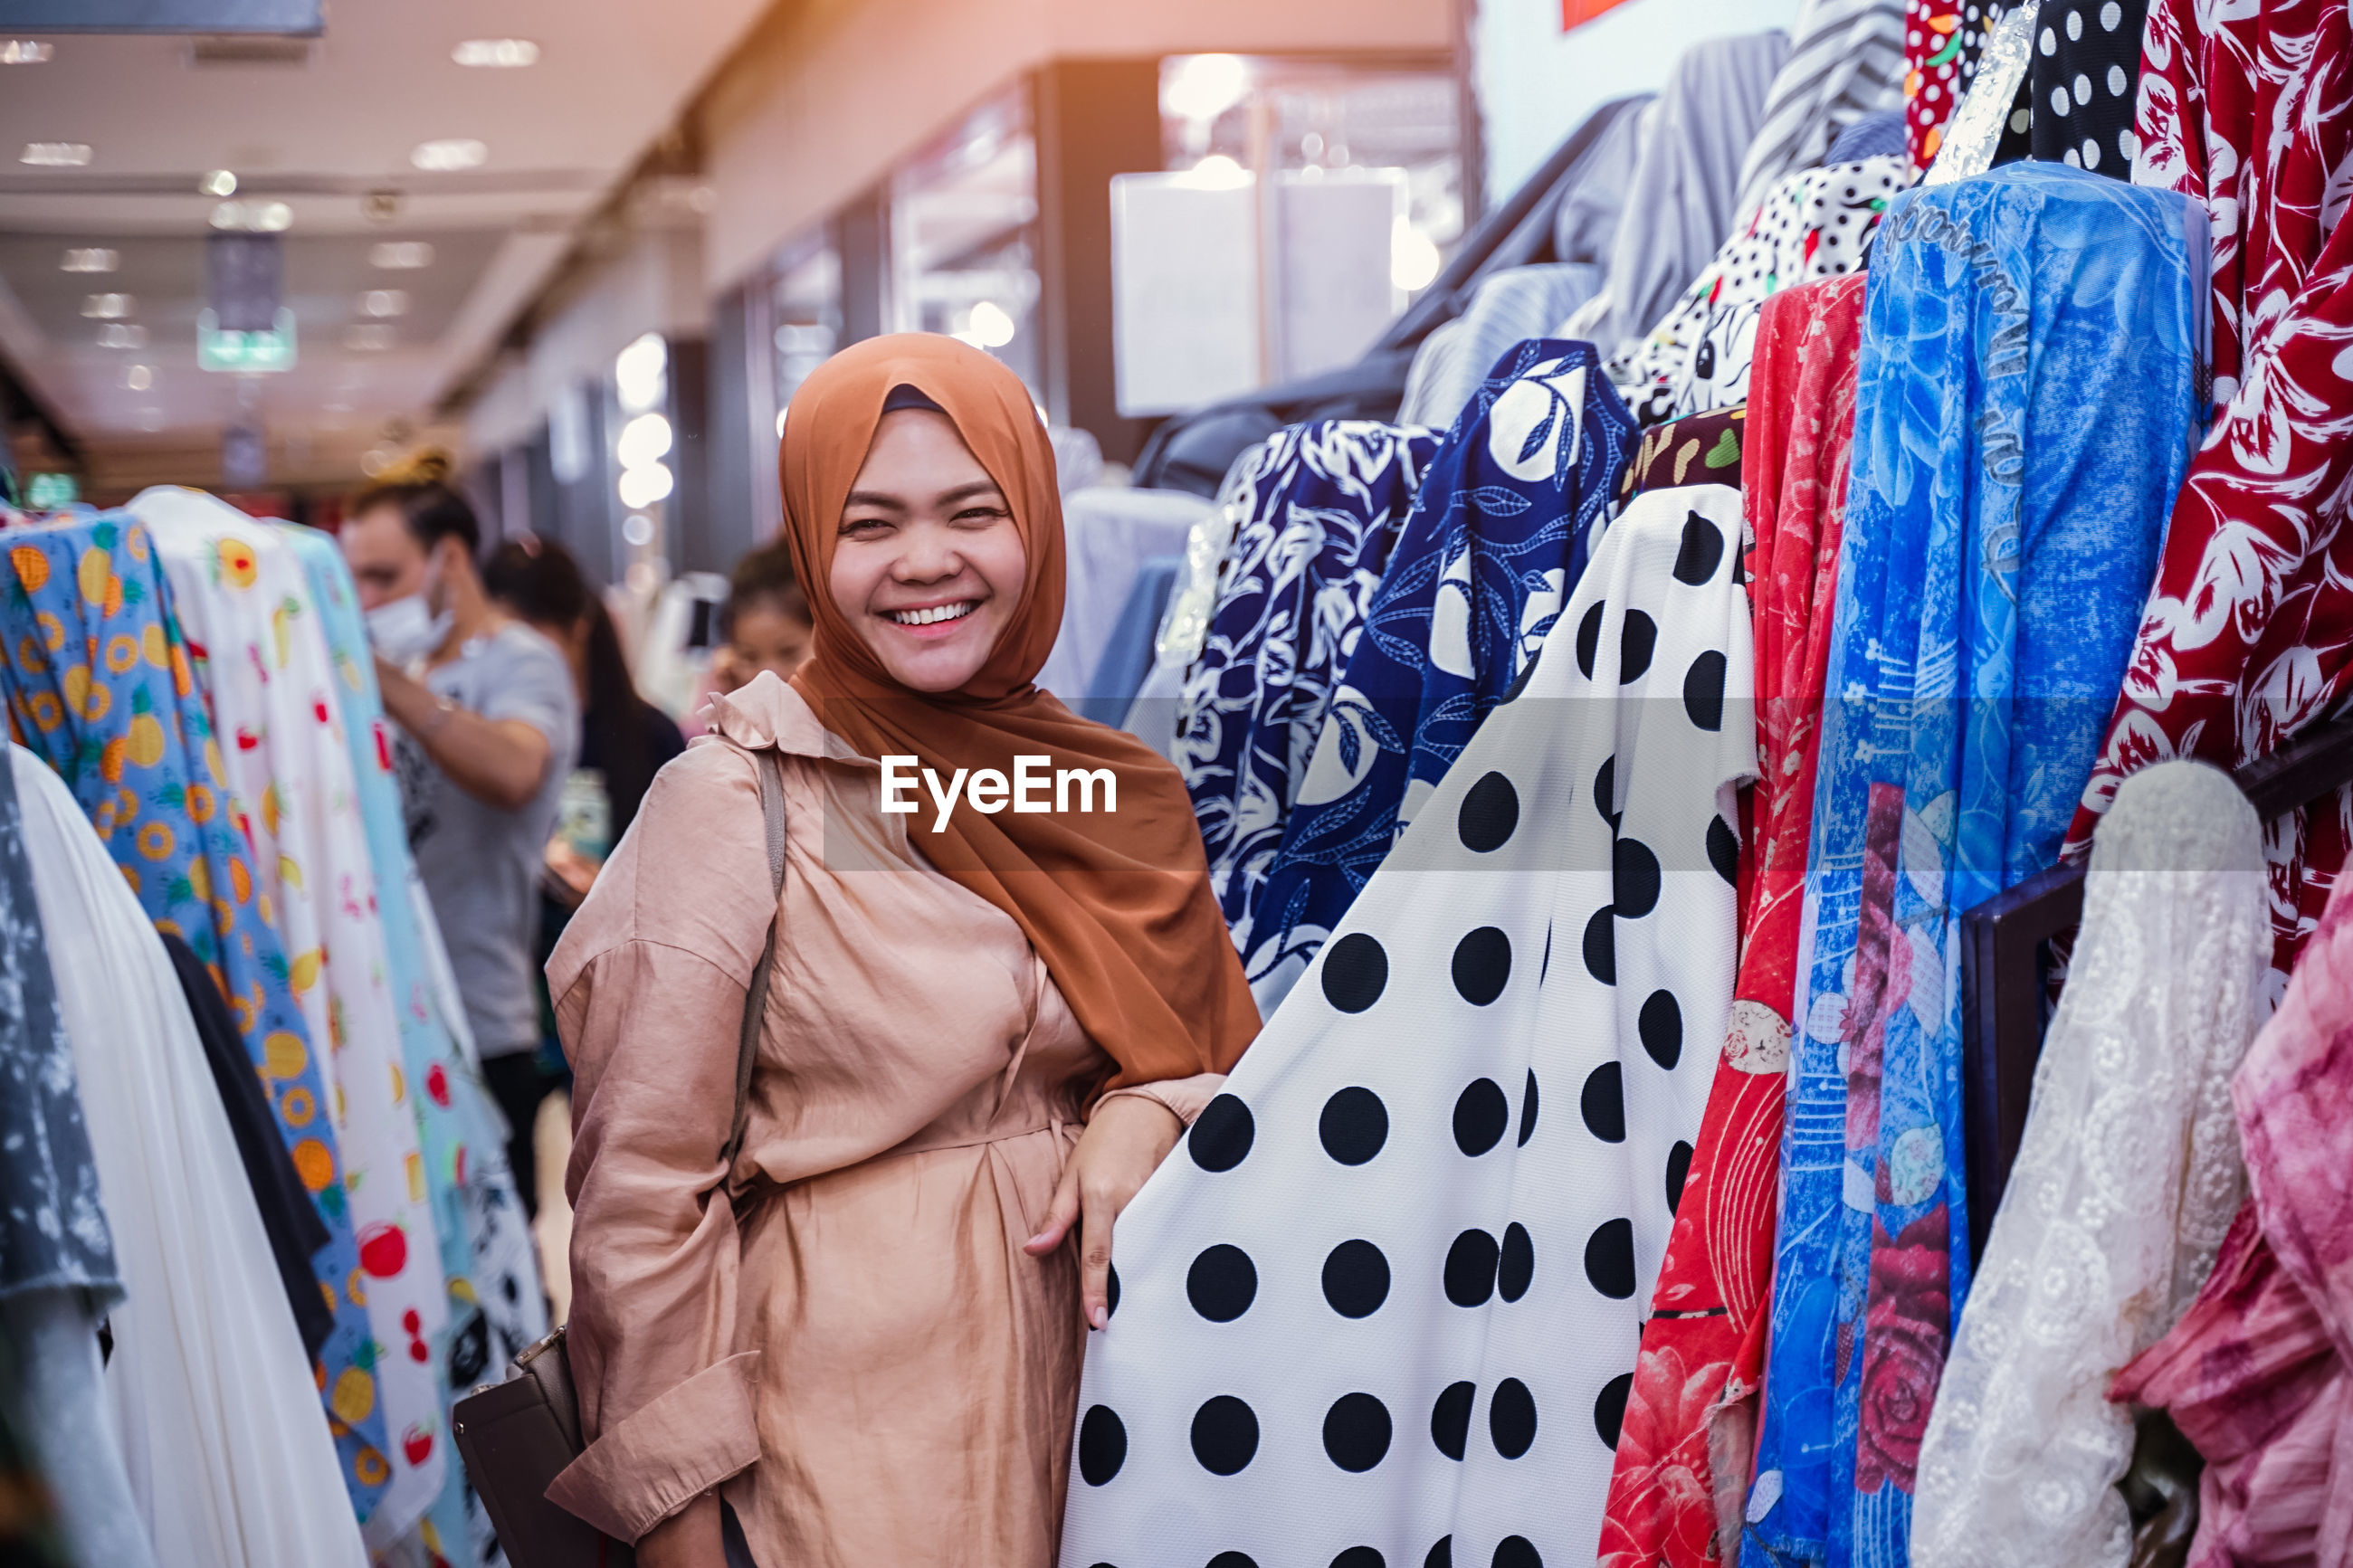 Woman shopping in store